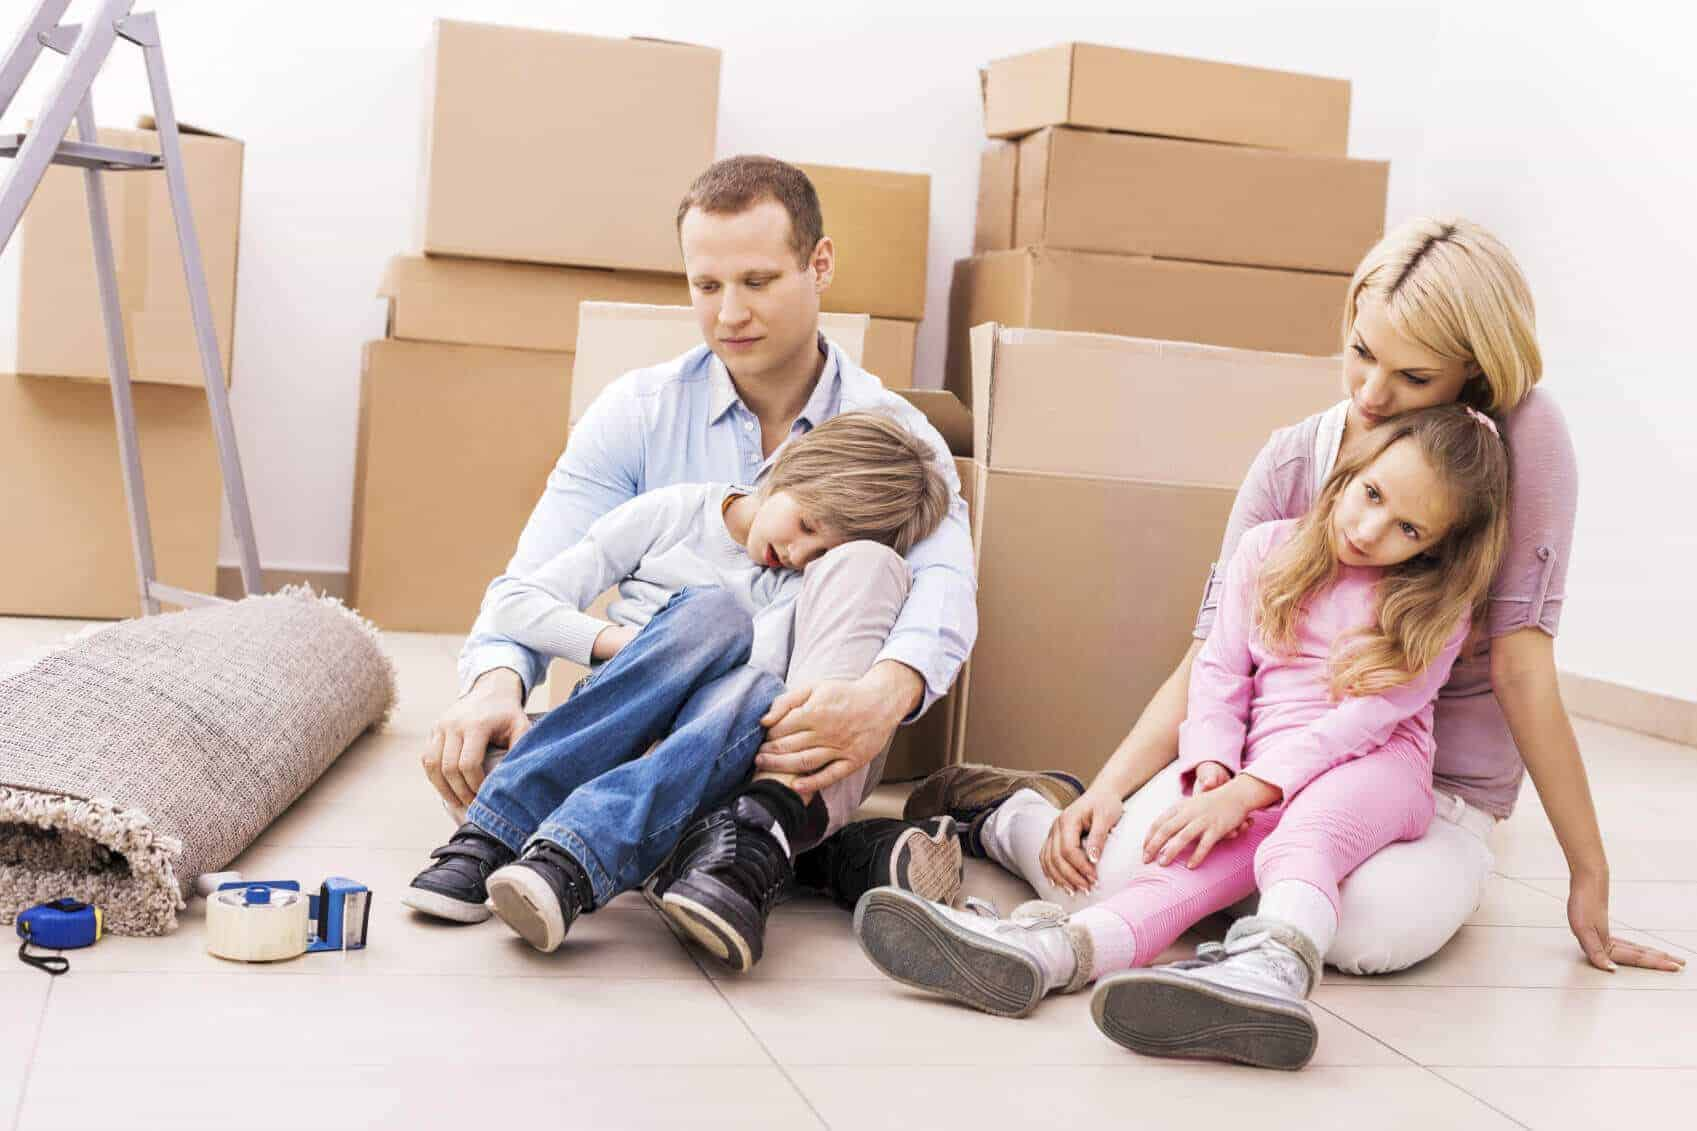 exhausted family sits on the floor surrounded by boxes and packing materials